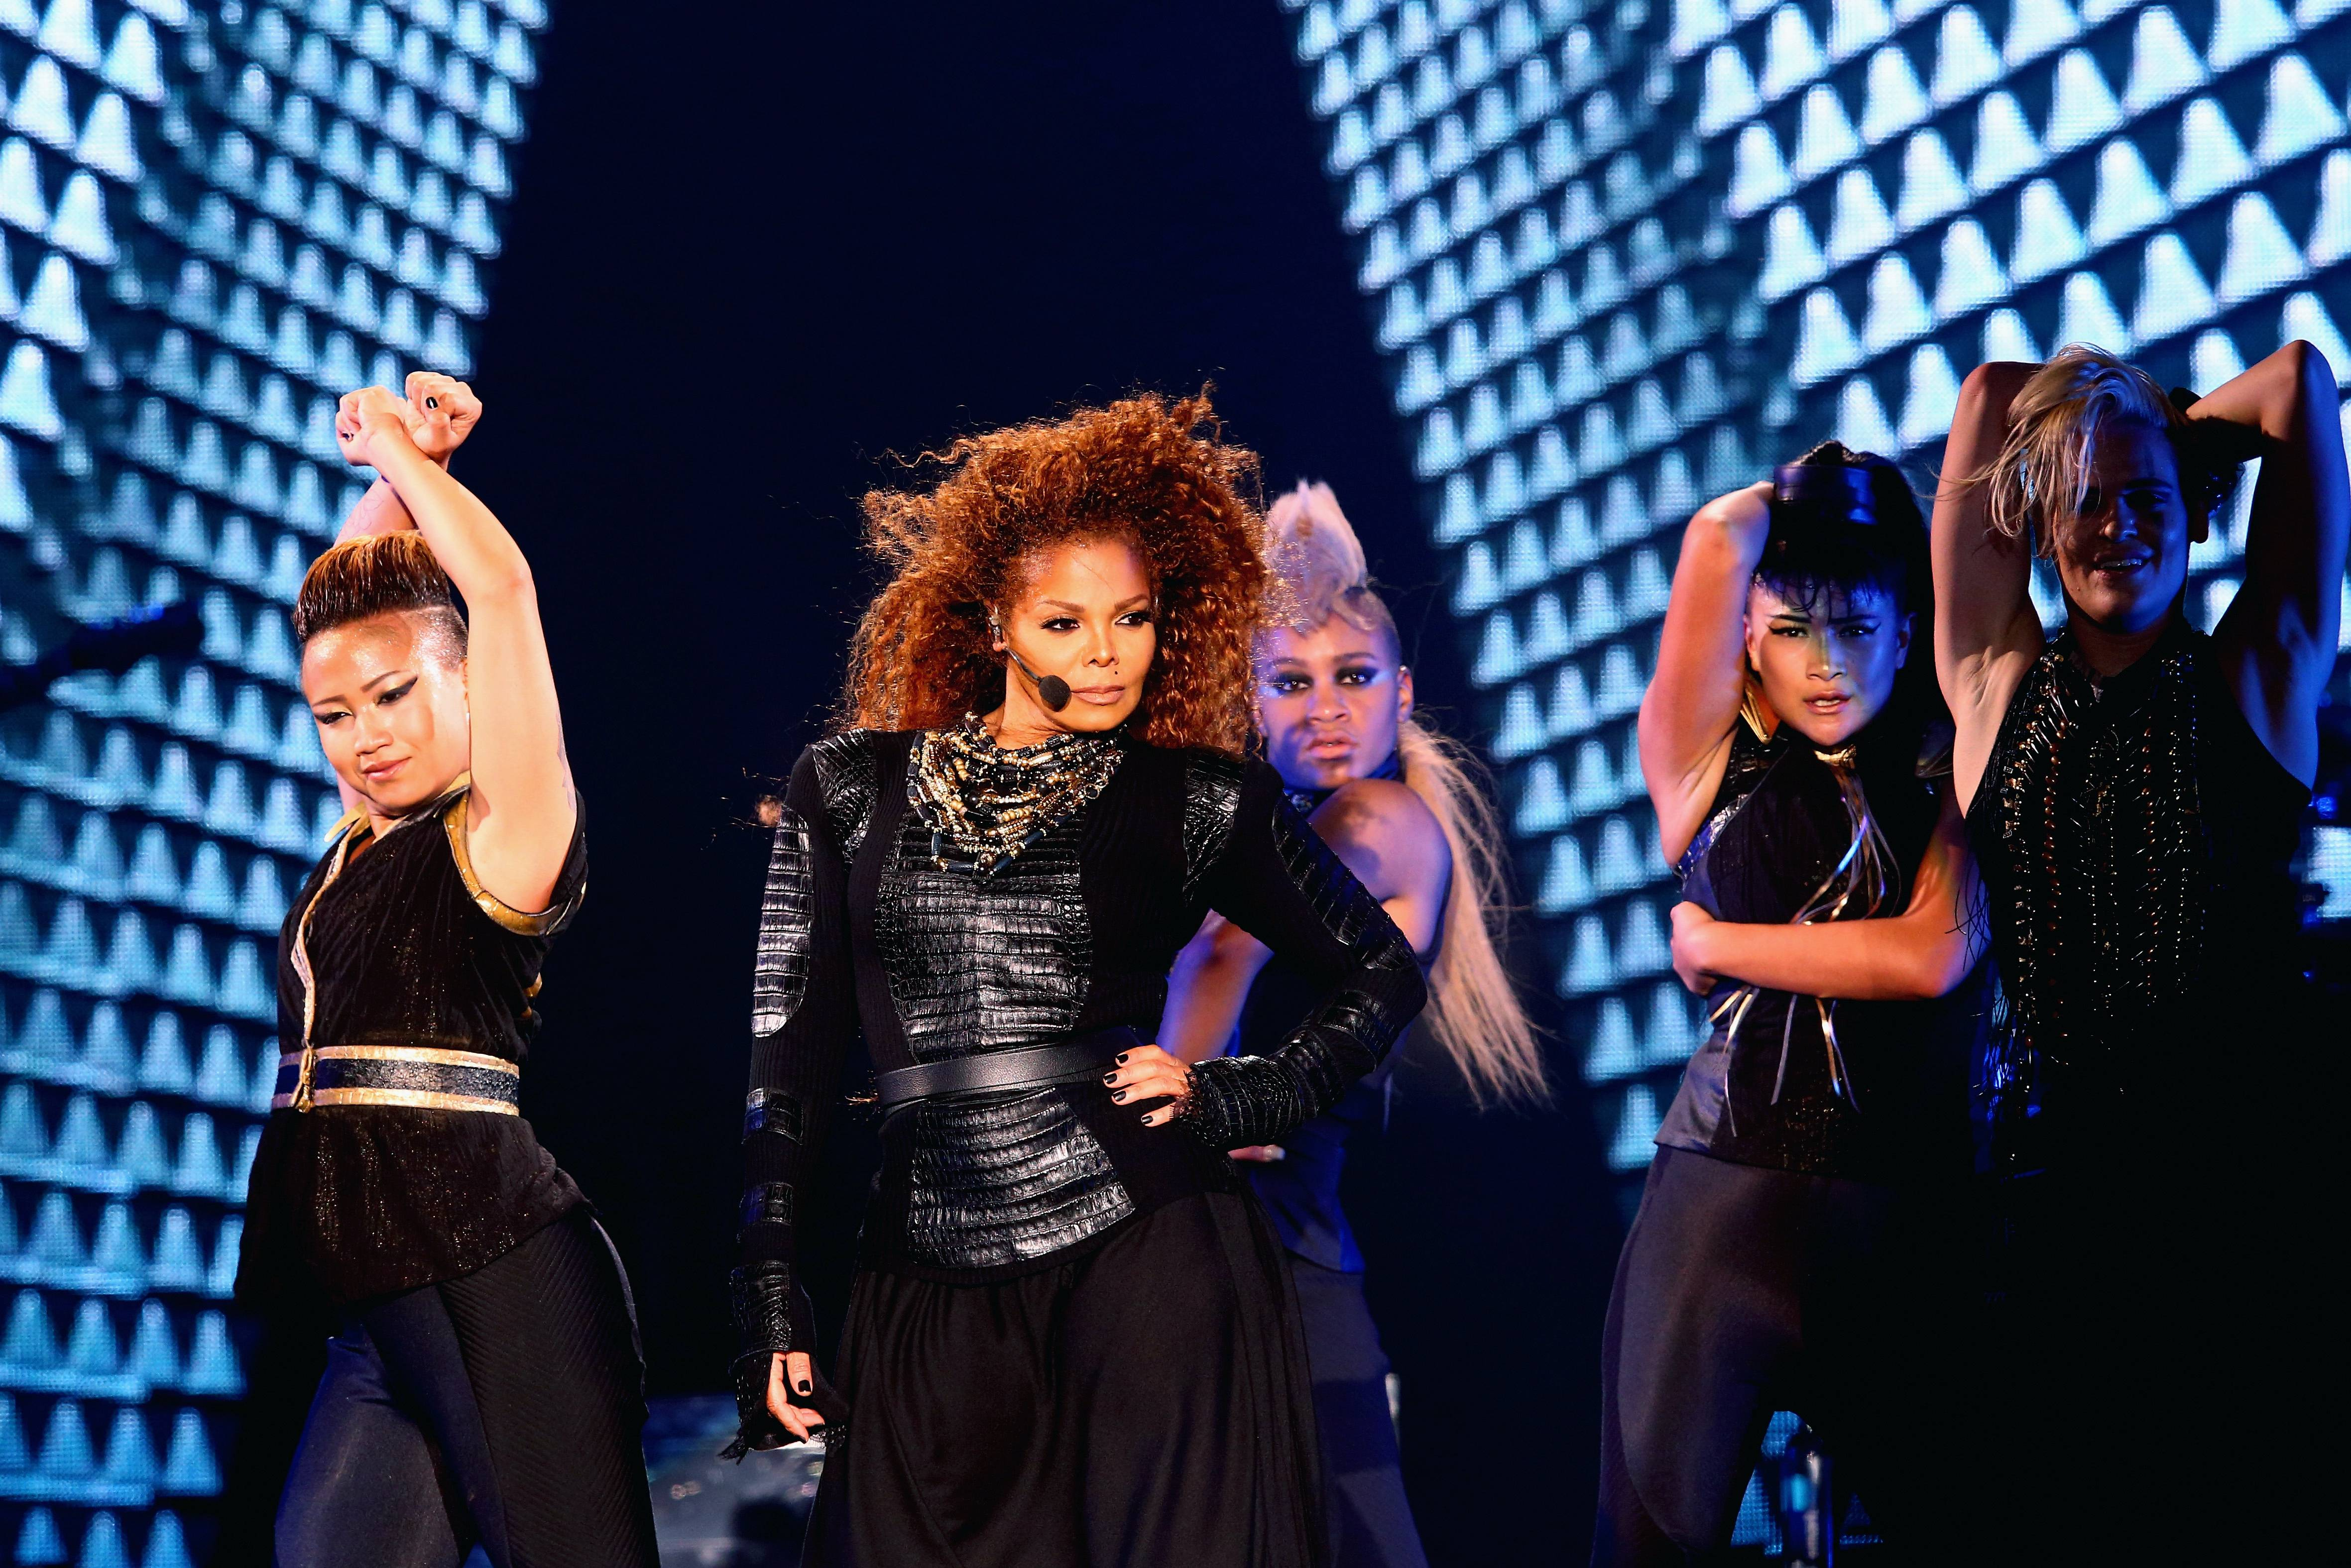 /content/dam/betcom/images/2016/05/Music-05-16-05-31/051316-music-10-times-janet-jackson-changed-the-game-6.jpg